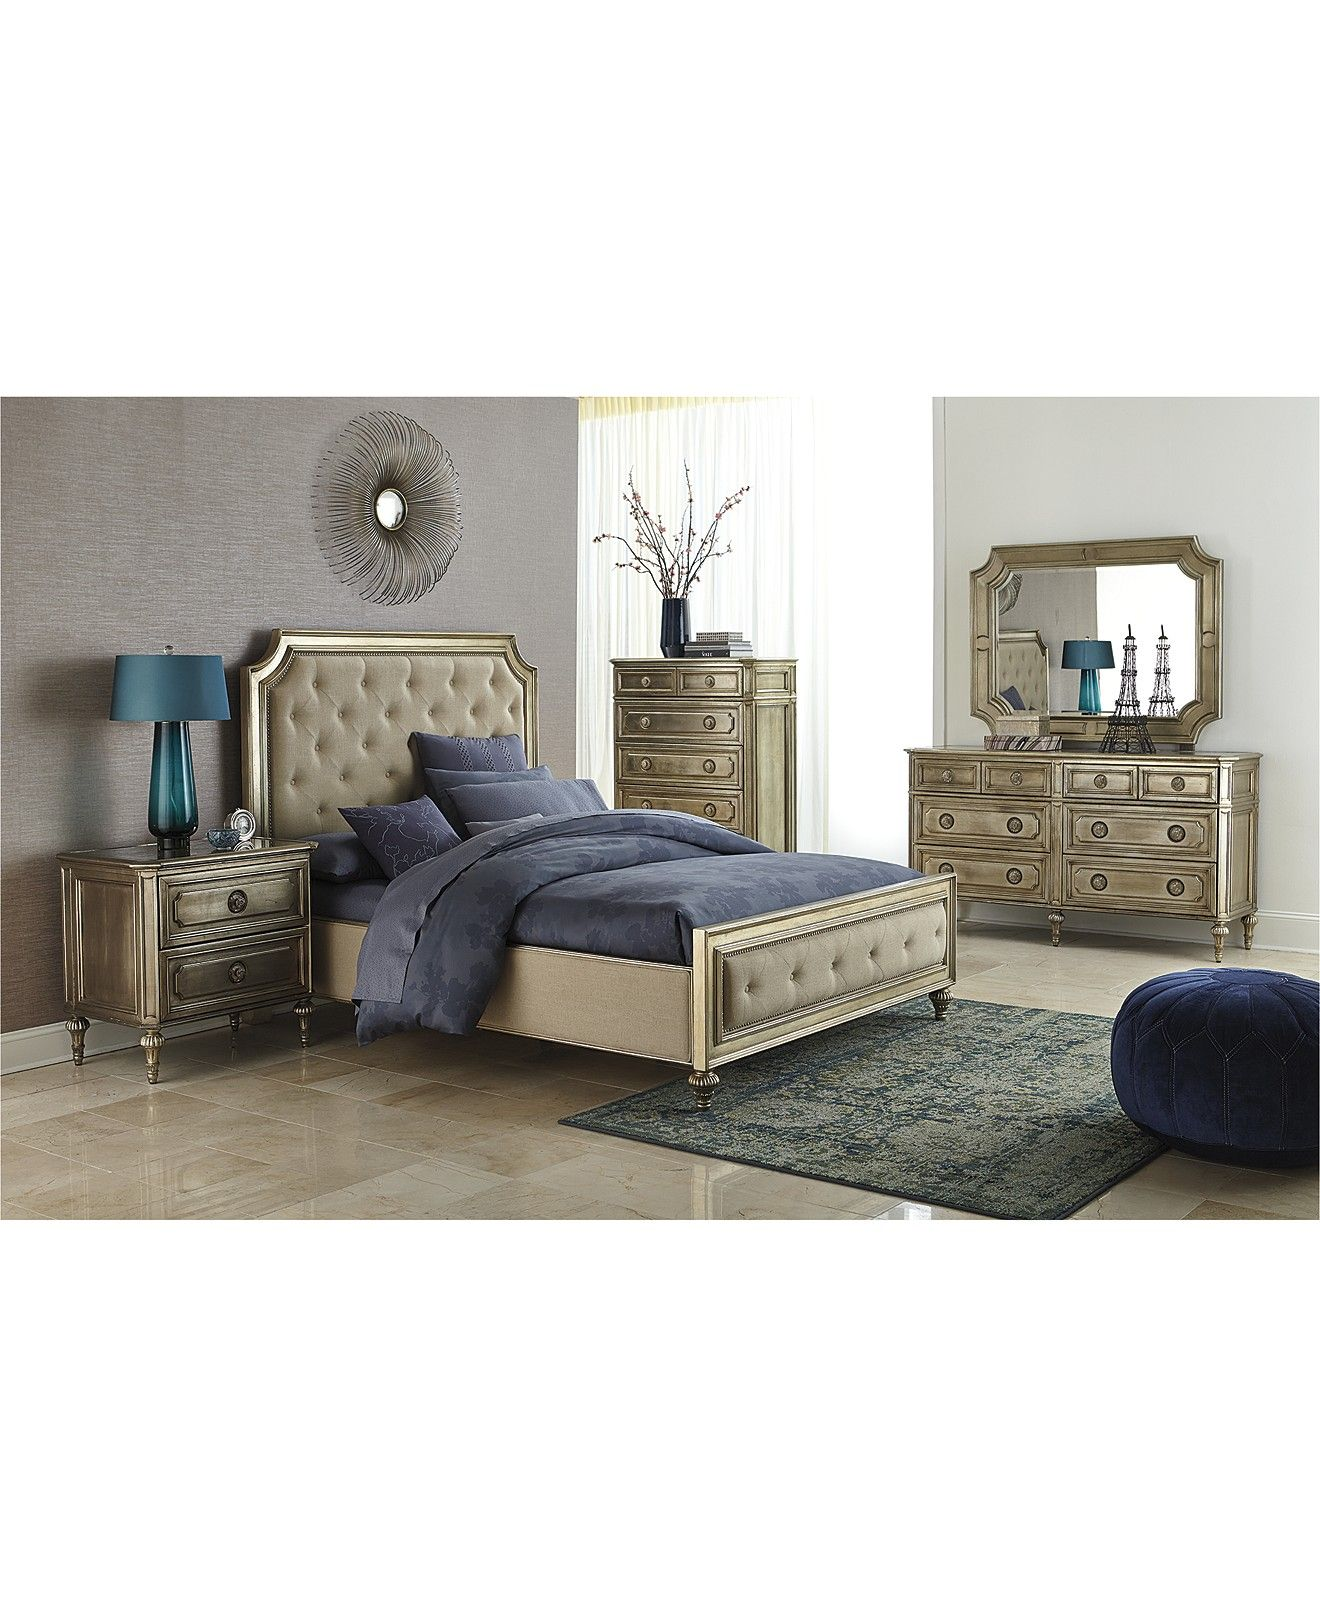 Prosecco 3 Piece Queen Bedroom Furniture Set With Chest   Shop All Bedroom    Furniture